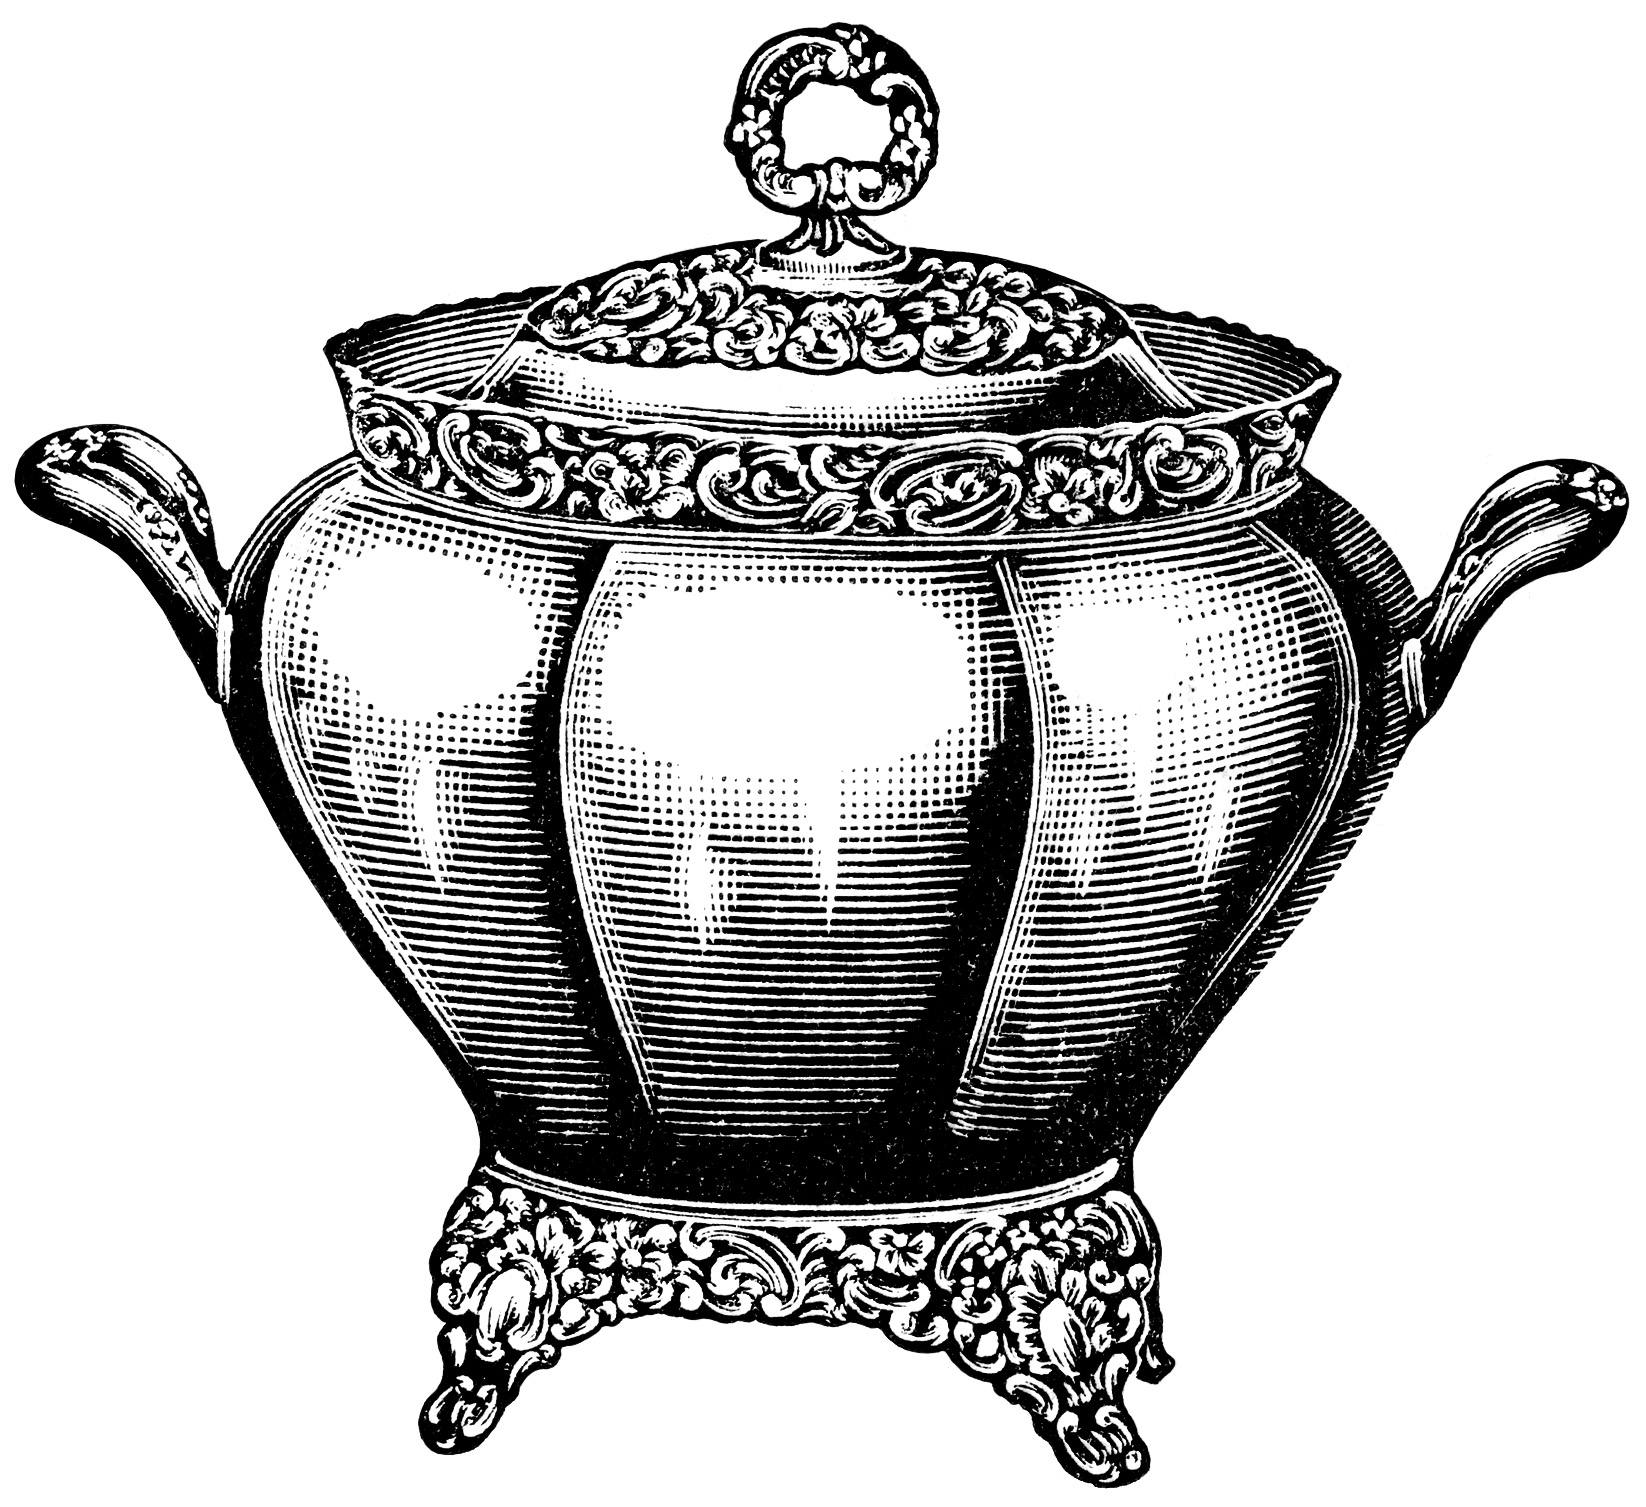 Retro Kitchen Illustration: Soup Tureen ~ Free Vintage Clip Art